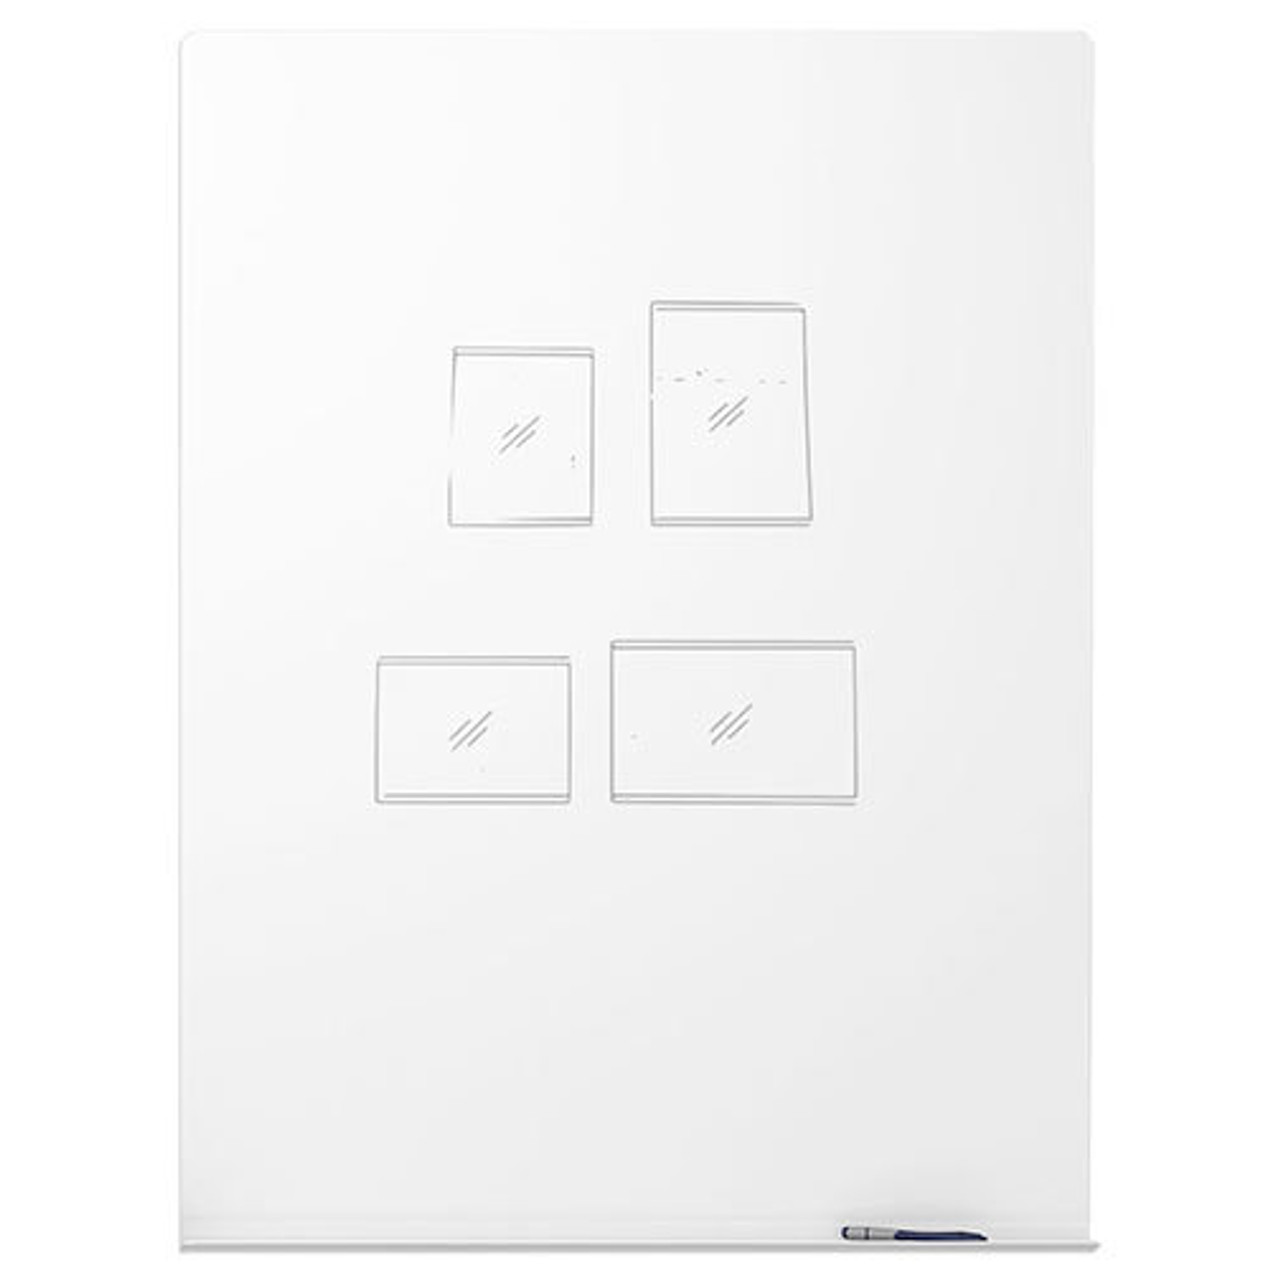 Peter Pepper MeetUp Dry Erase Whiteboards